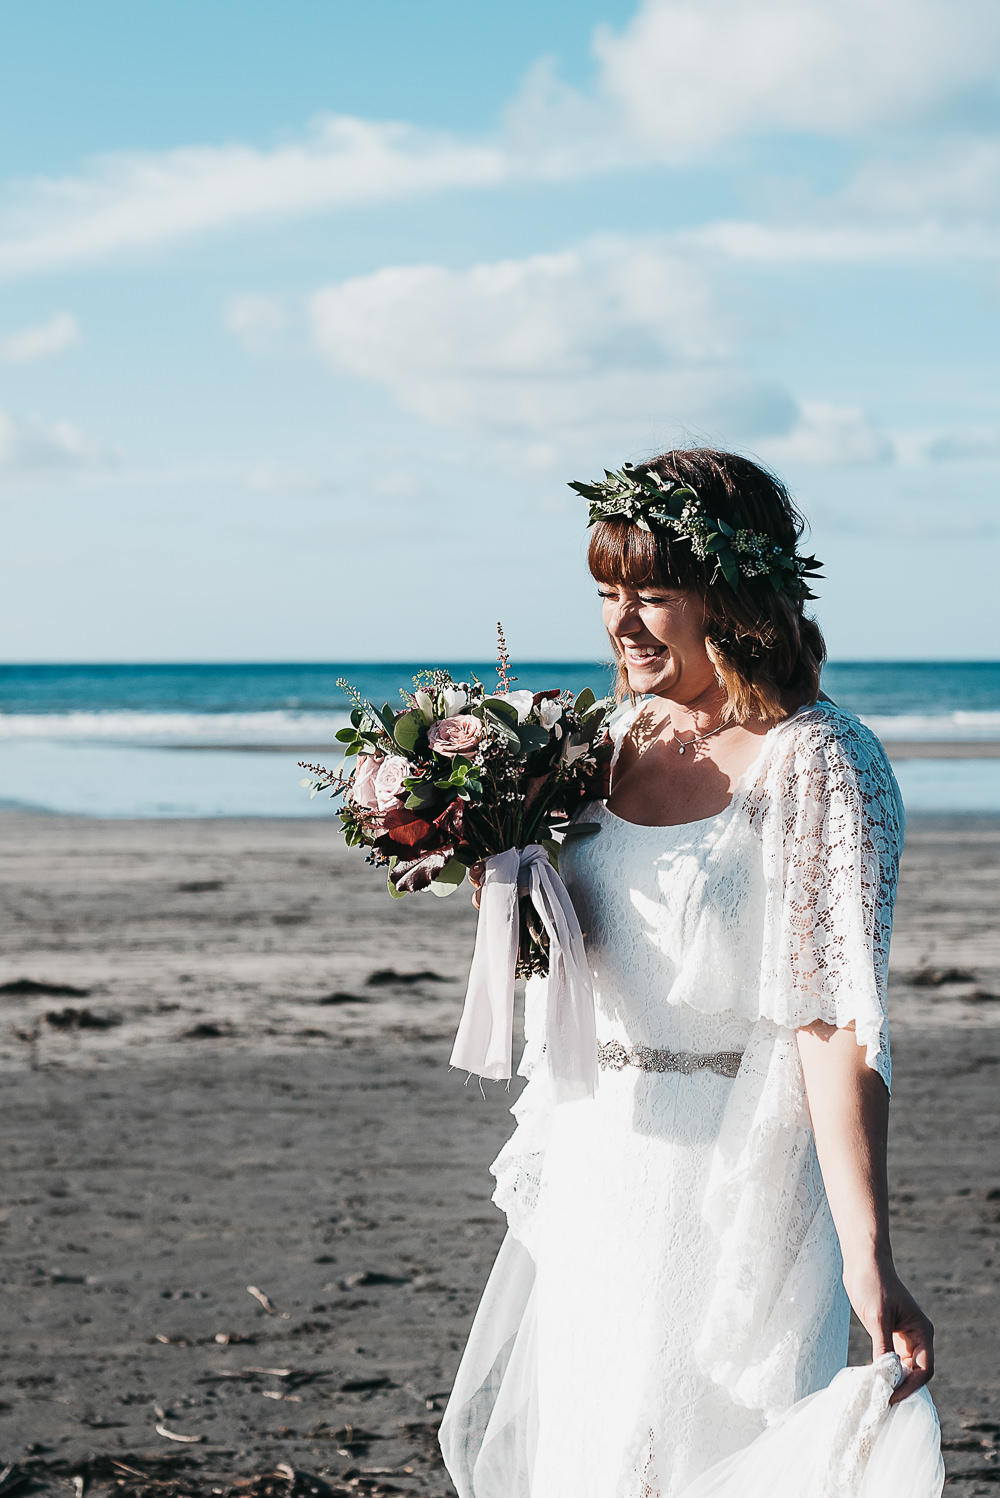 Bride Bridal Boho Sleeves Lace Dress Gown Greenery Floral Crown Sparkly Belt Bouquet Llys Meddyg Wedding Hannah Miles Photography